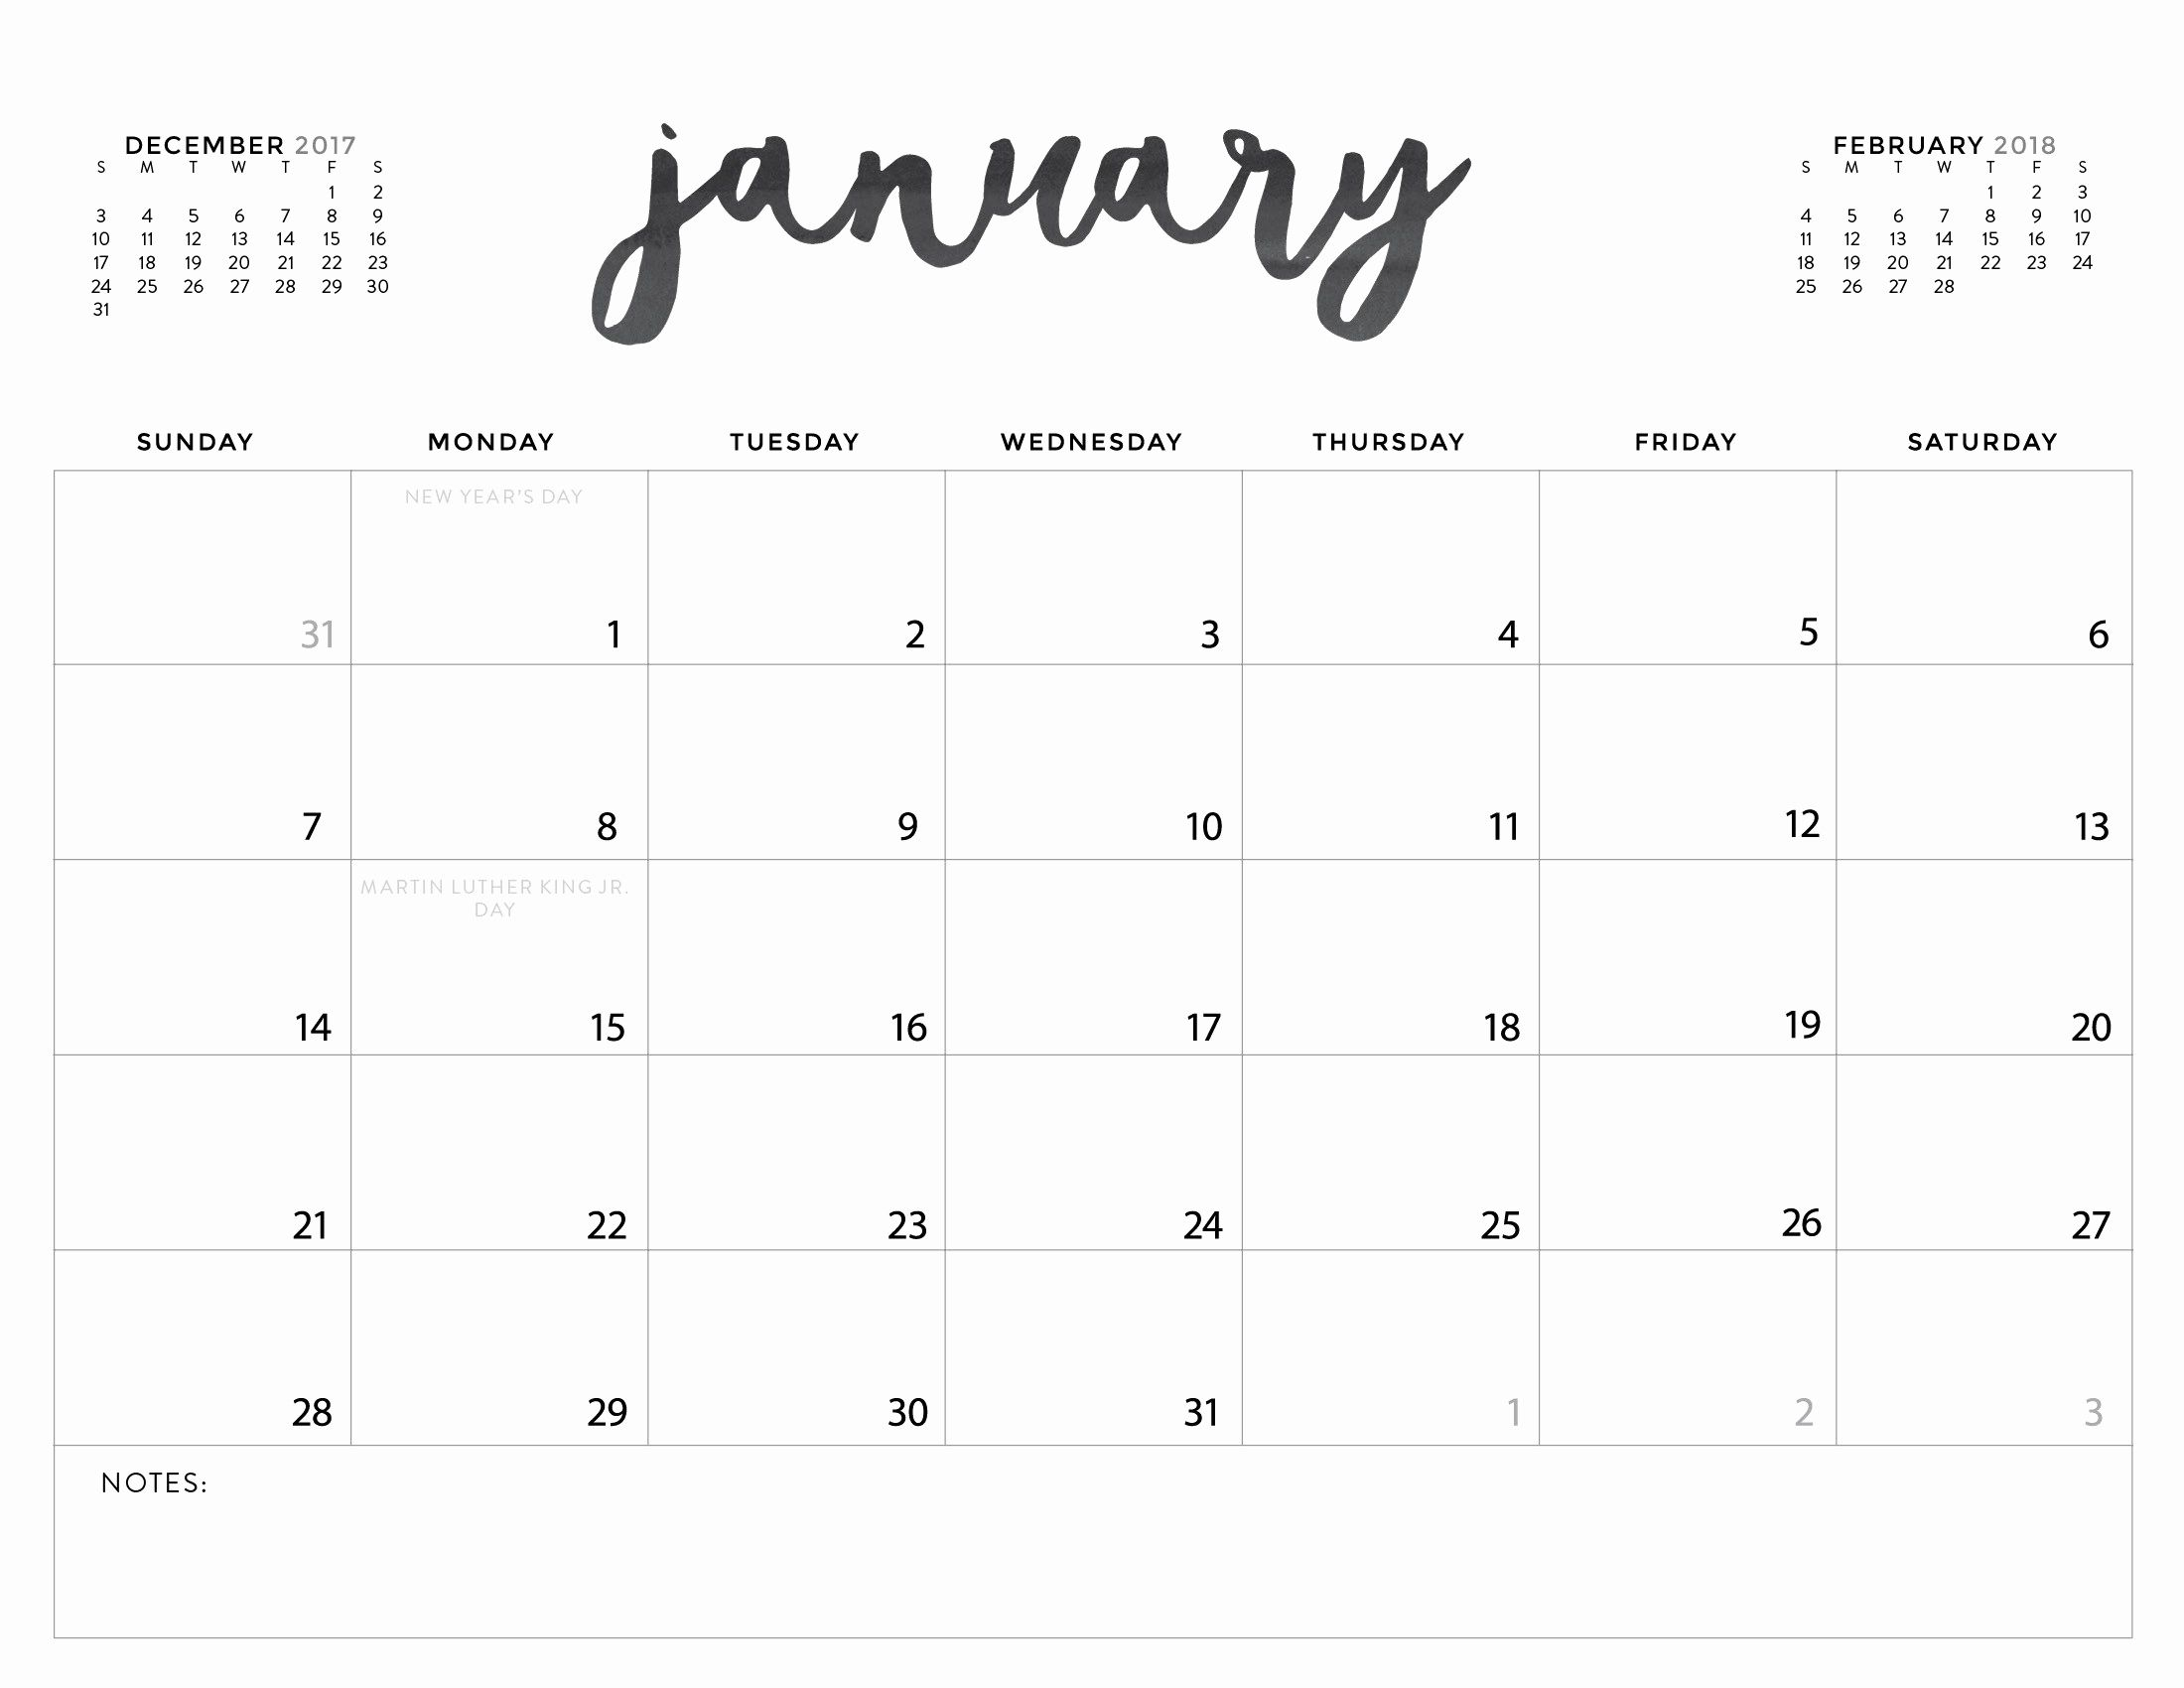 Catch Printable Calendar Without Downloading